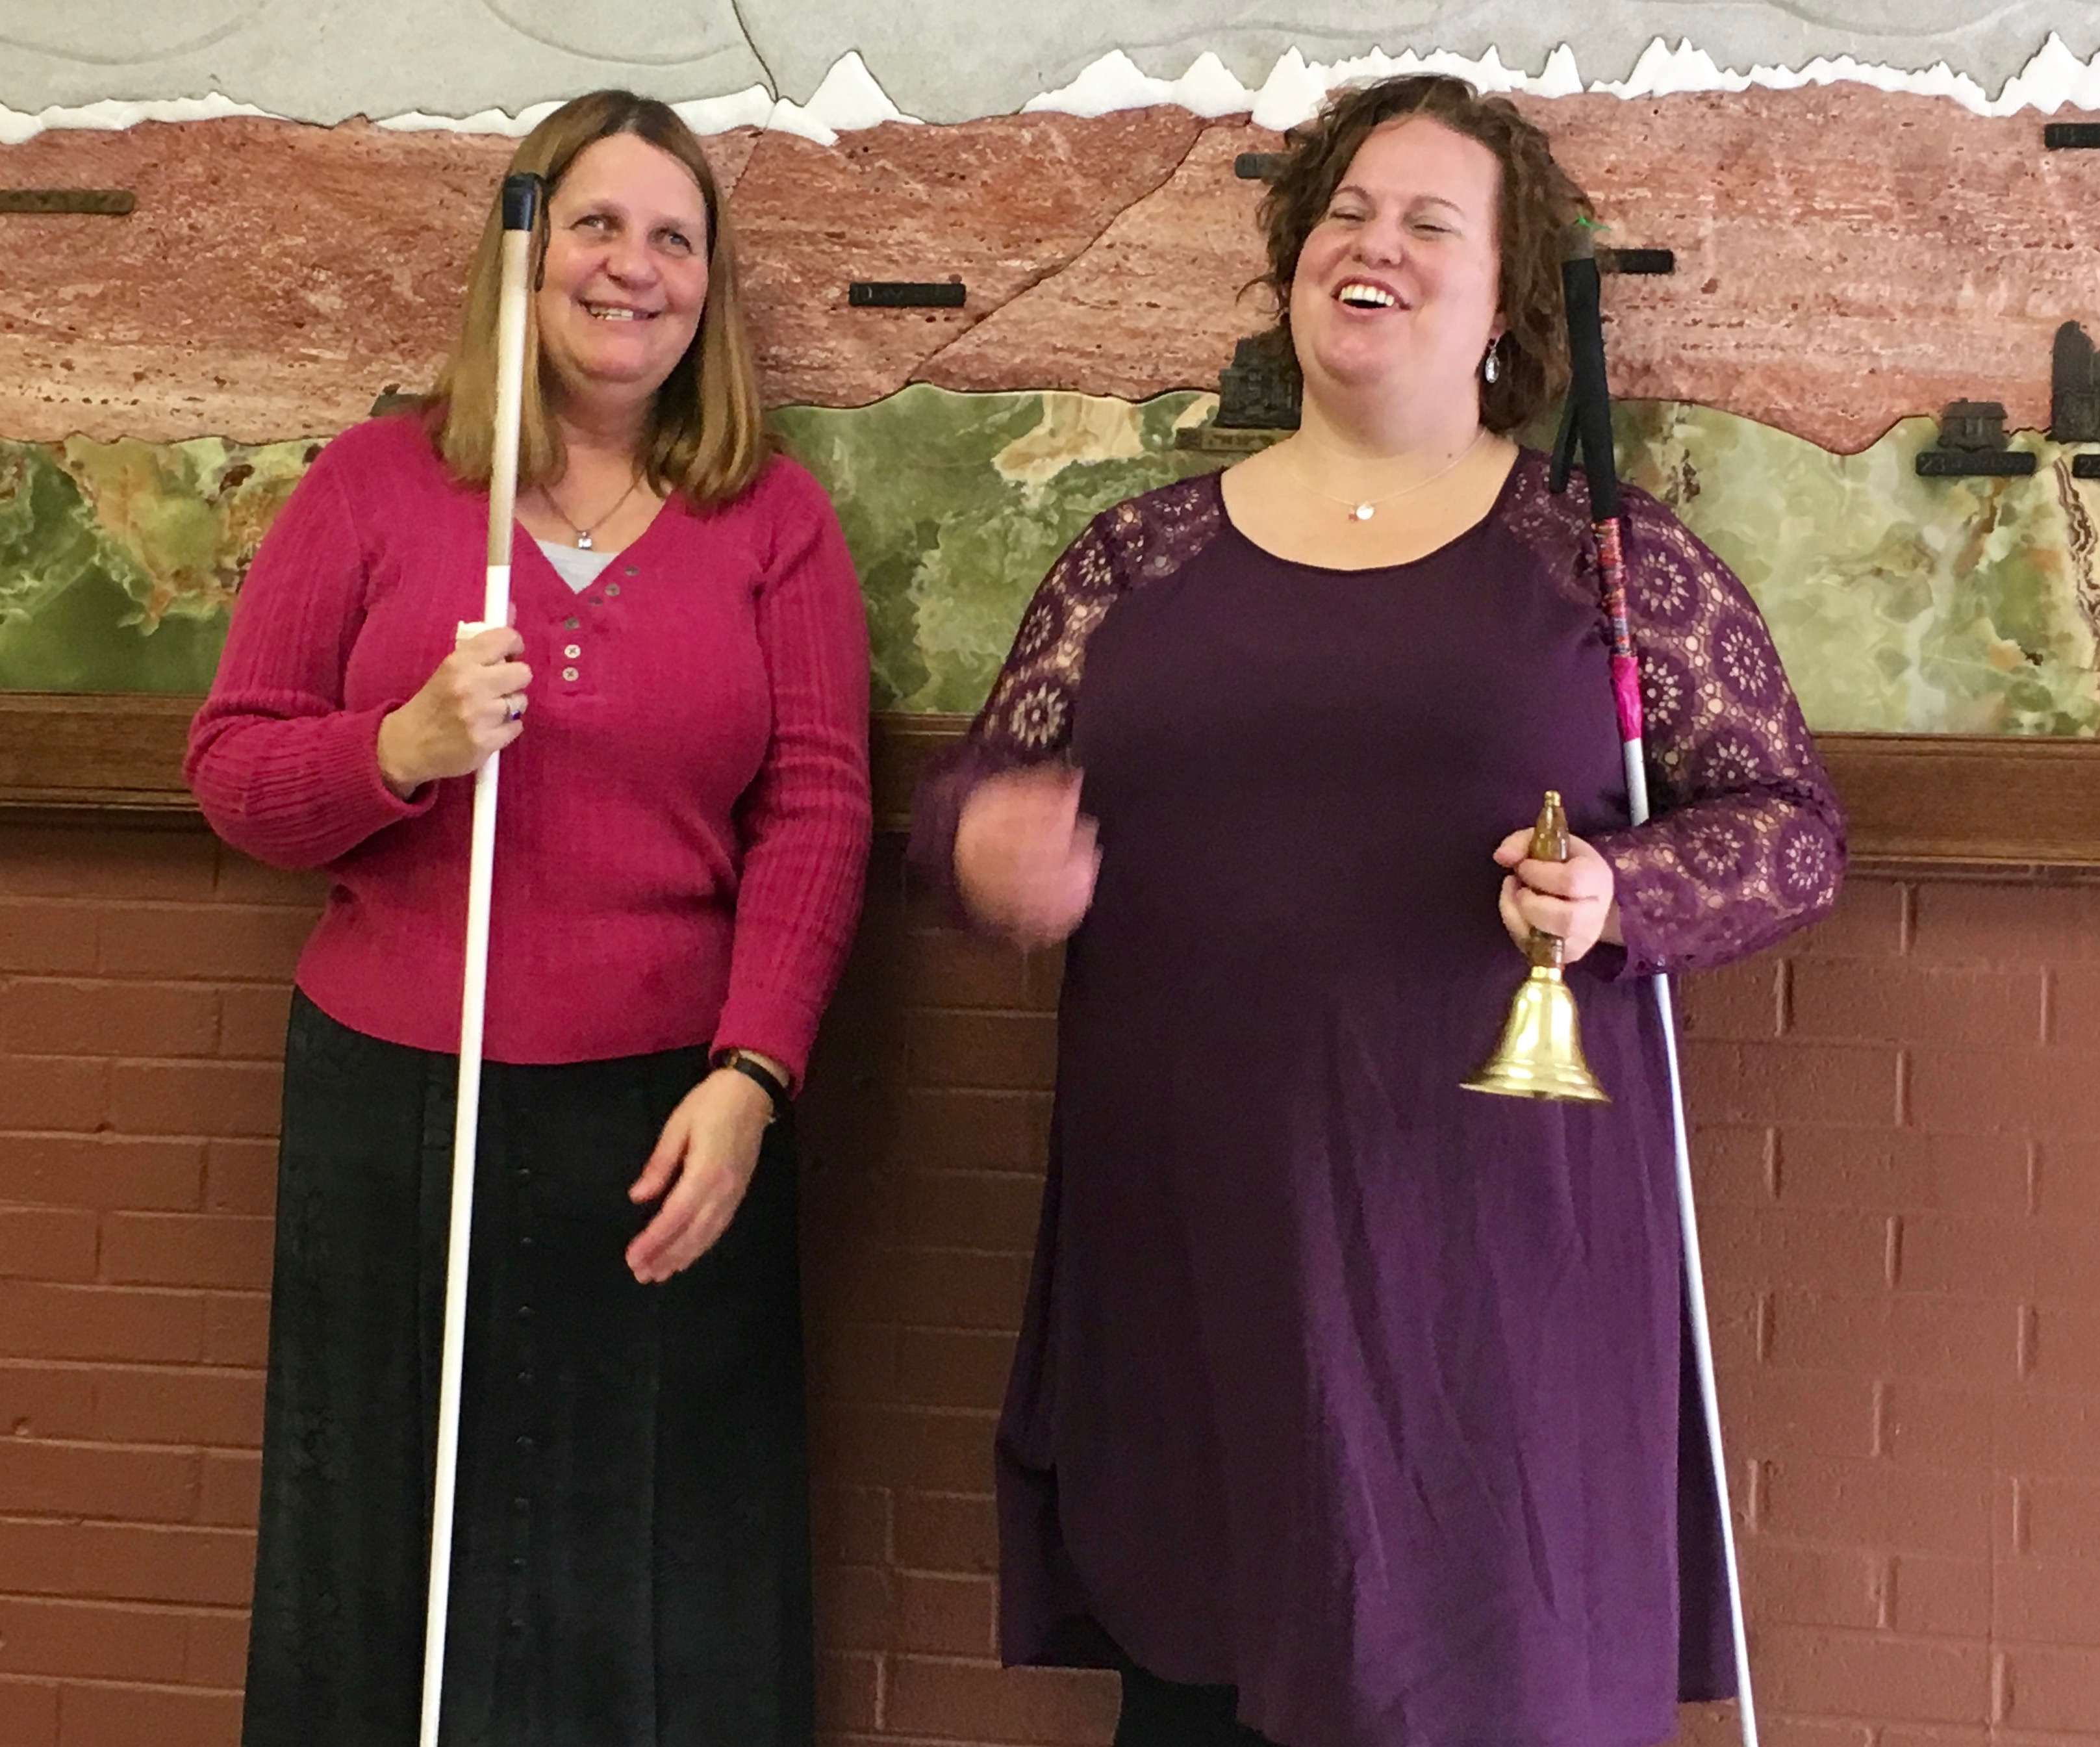 two joyful women stand together, one ringing her Freedom Bell